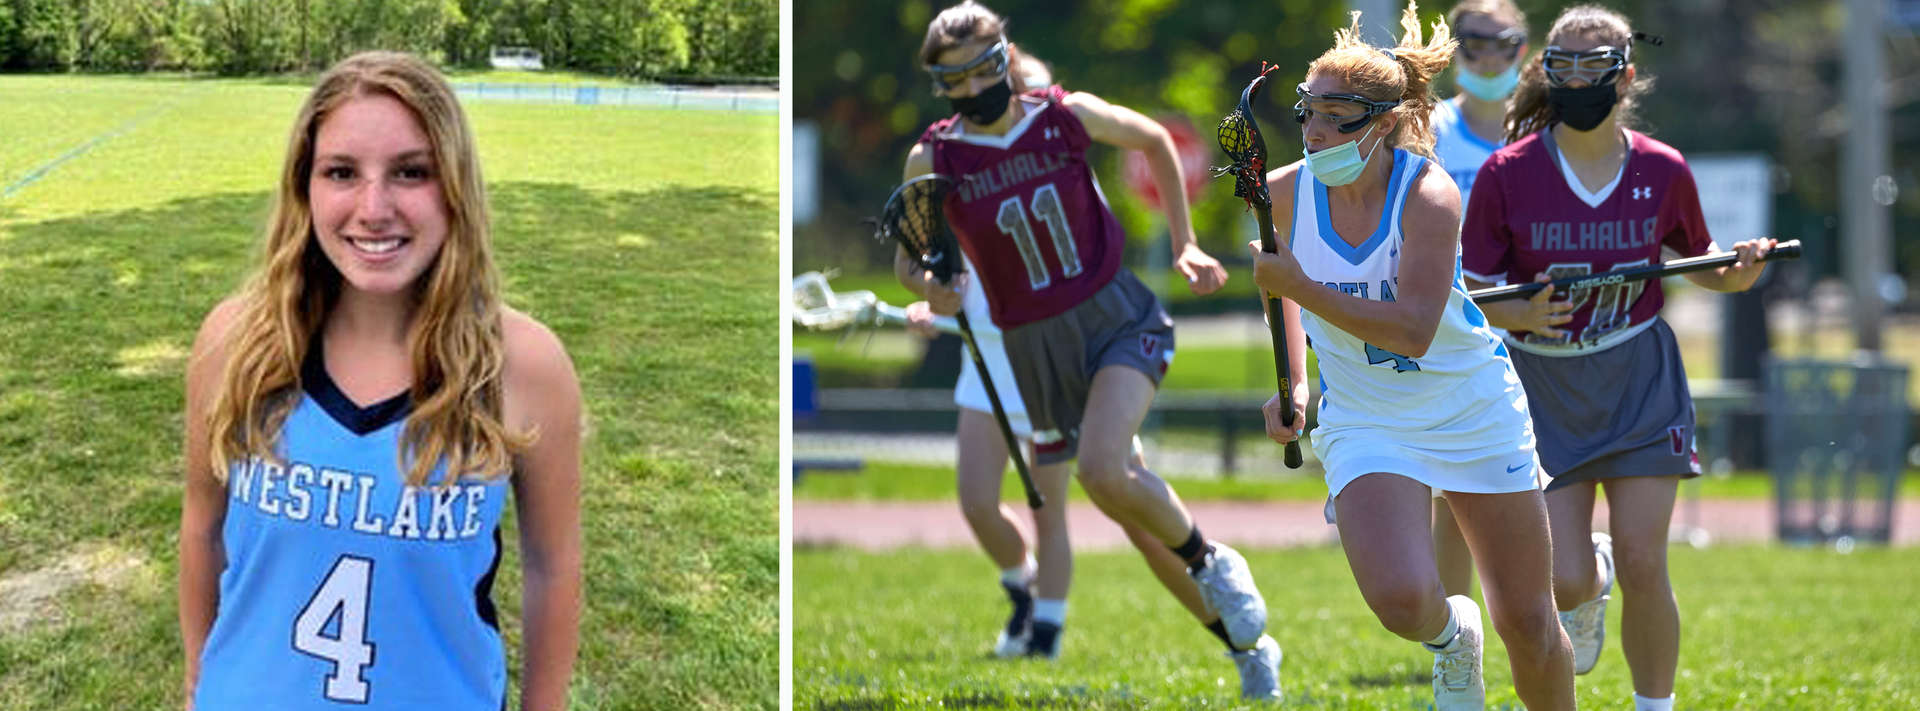 Girl in lacrosse jersey and girl playing lacrosse